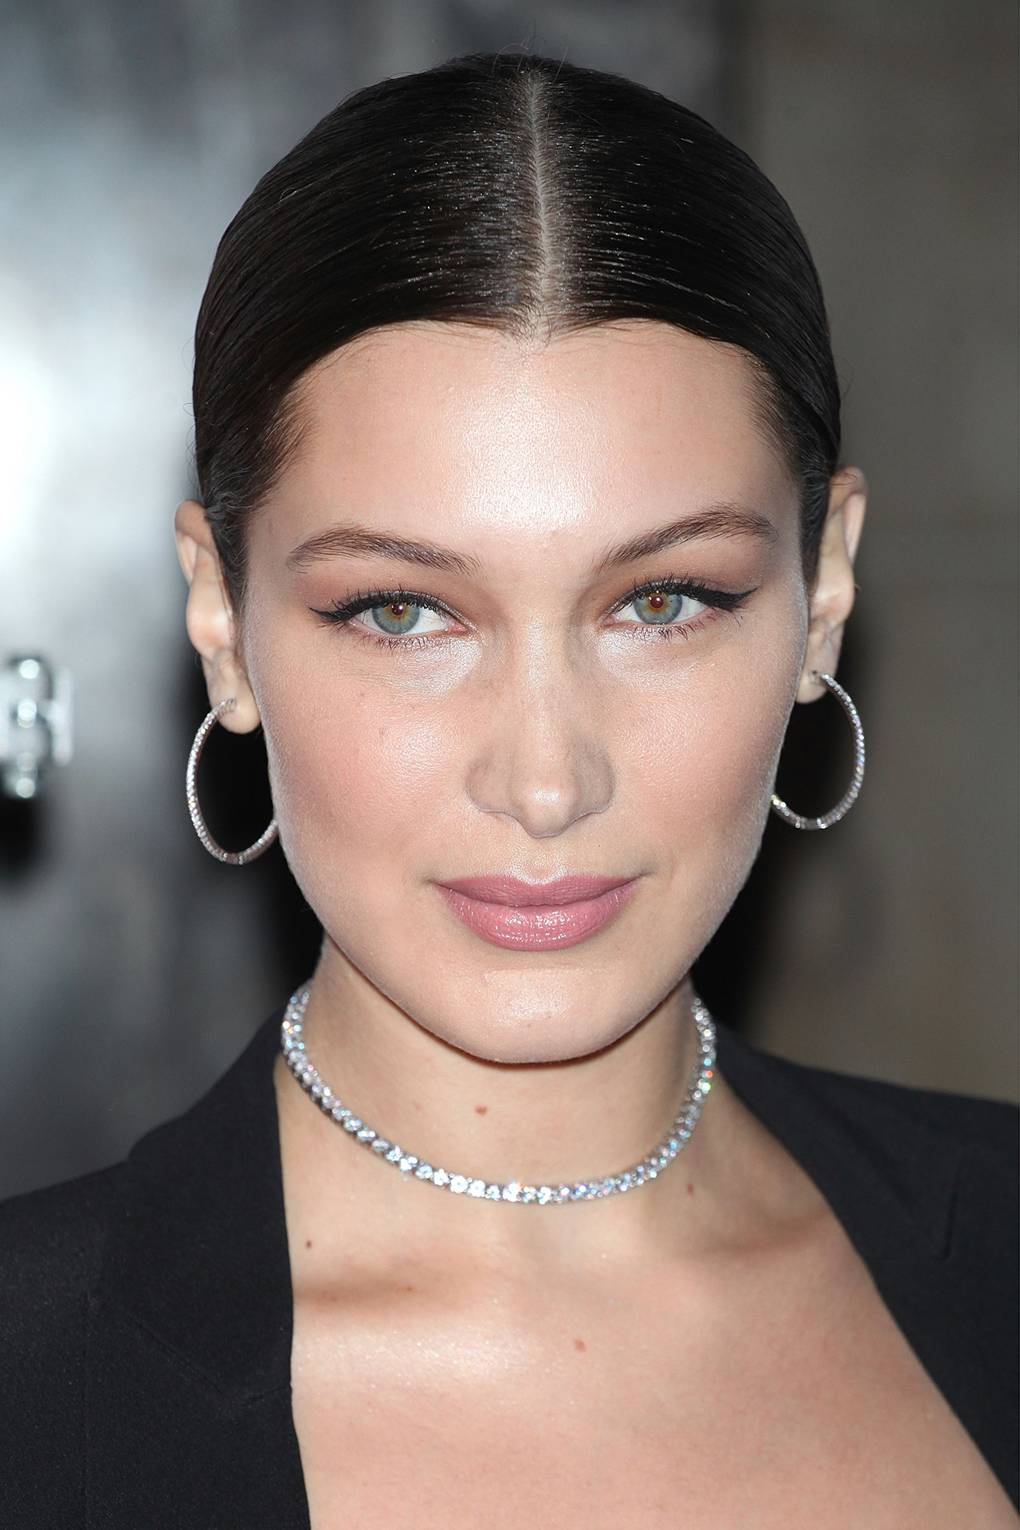 Forum on this topic: Our Favourite Supermodel Makeup Trick, our-favourite-supermodel-makeup-trick/